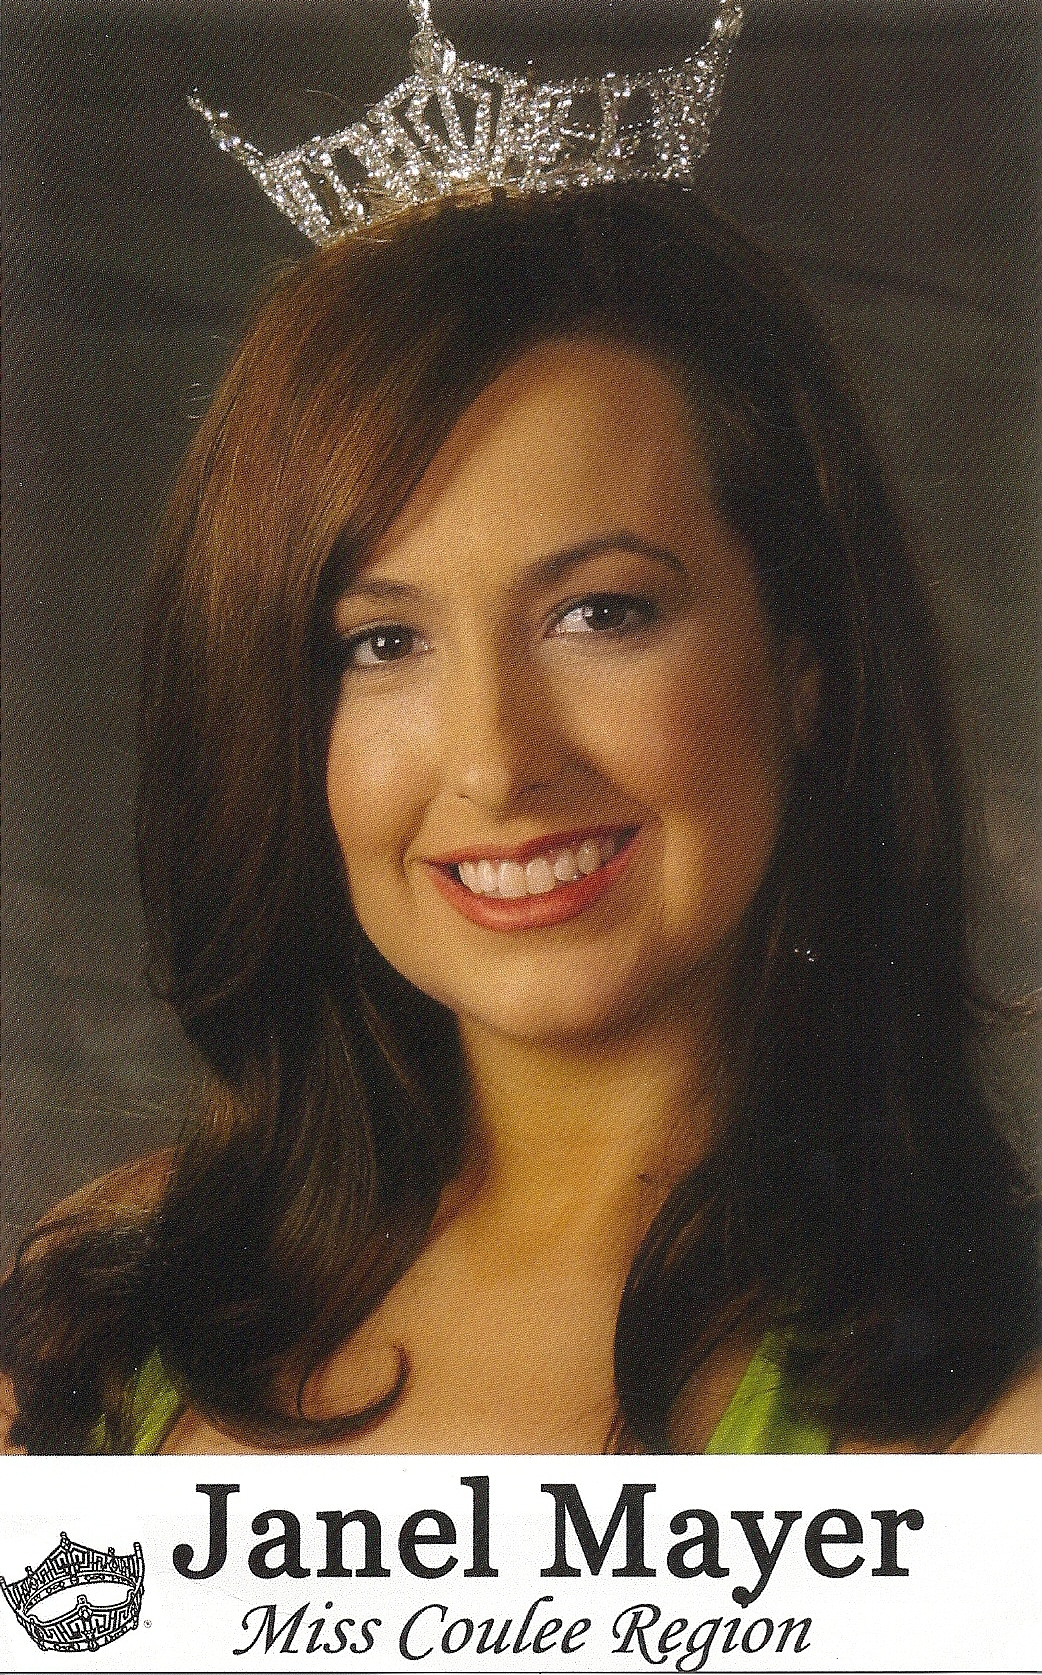 Janel Mayer, Miss Coulee Region